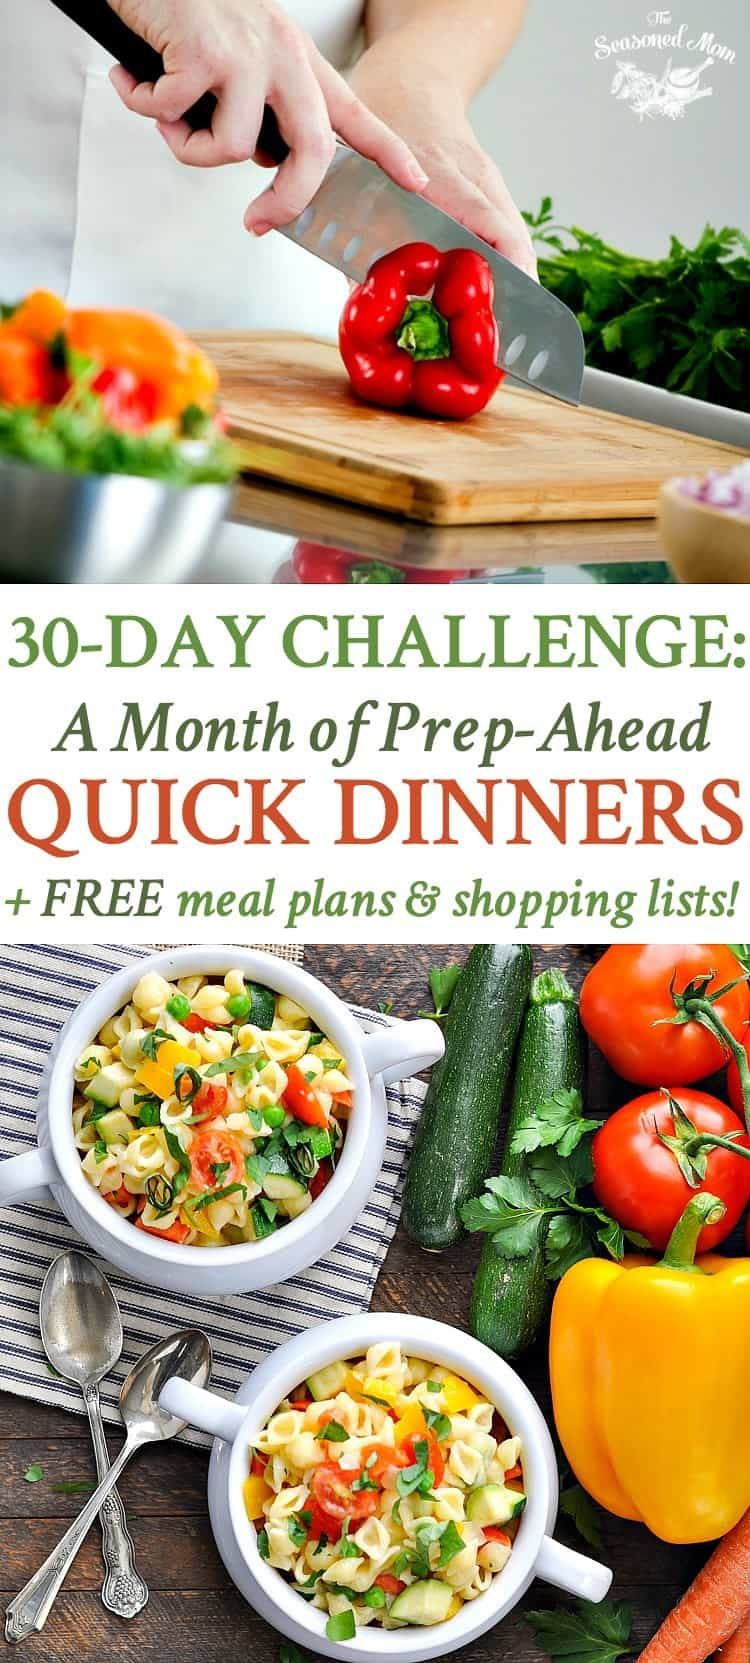 30-Day Challenge: A Month of Prep-Ahead Quick Dinners! Easy Dinner Recipes   Dinner Ideas   Healthy Dinner Recipes   Meal Planning on a Budget   Meal Prep   Clean Eating Recipes   Meal Plan   Meal Prep for the Week